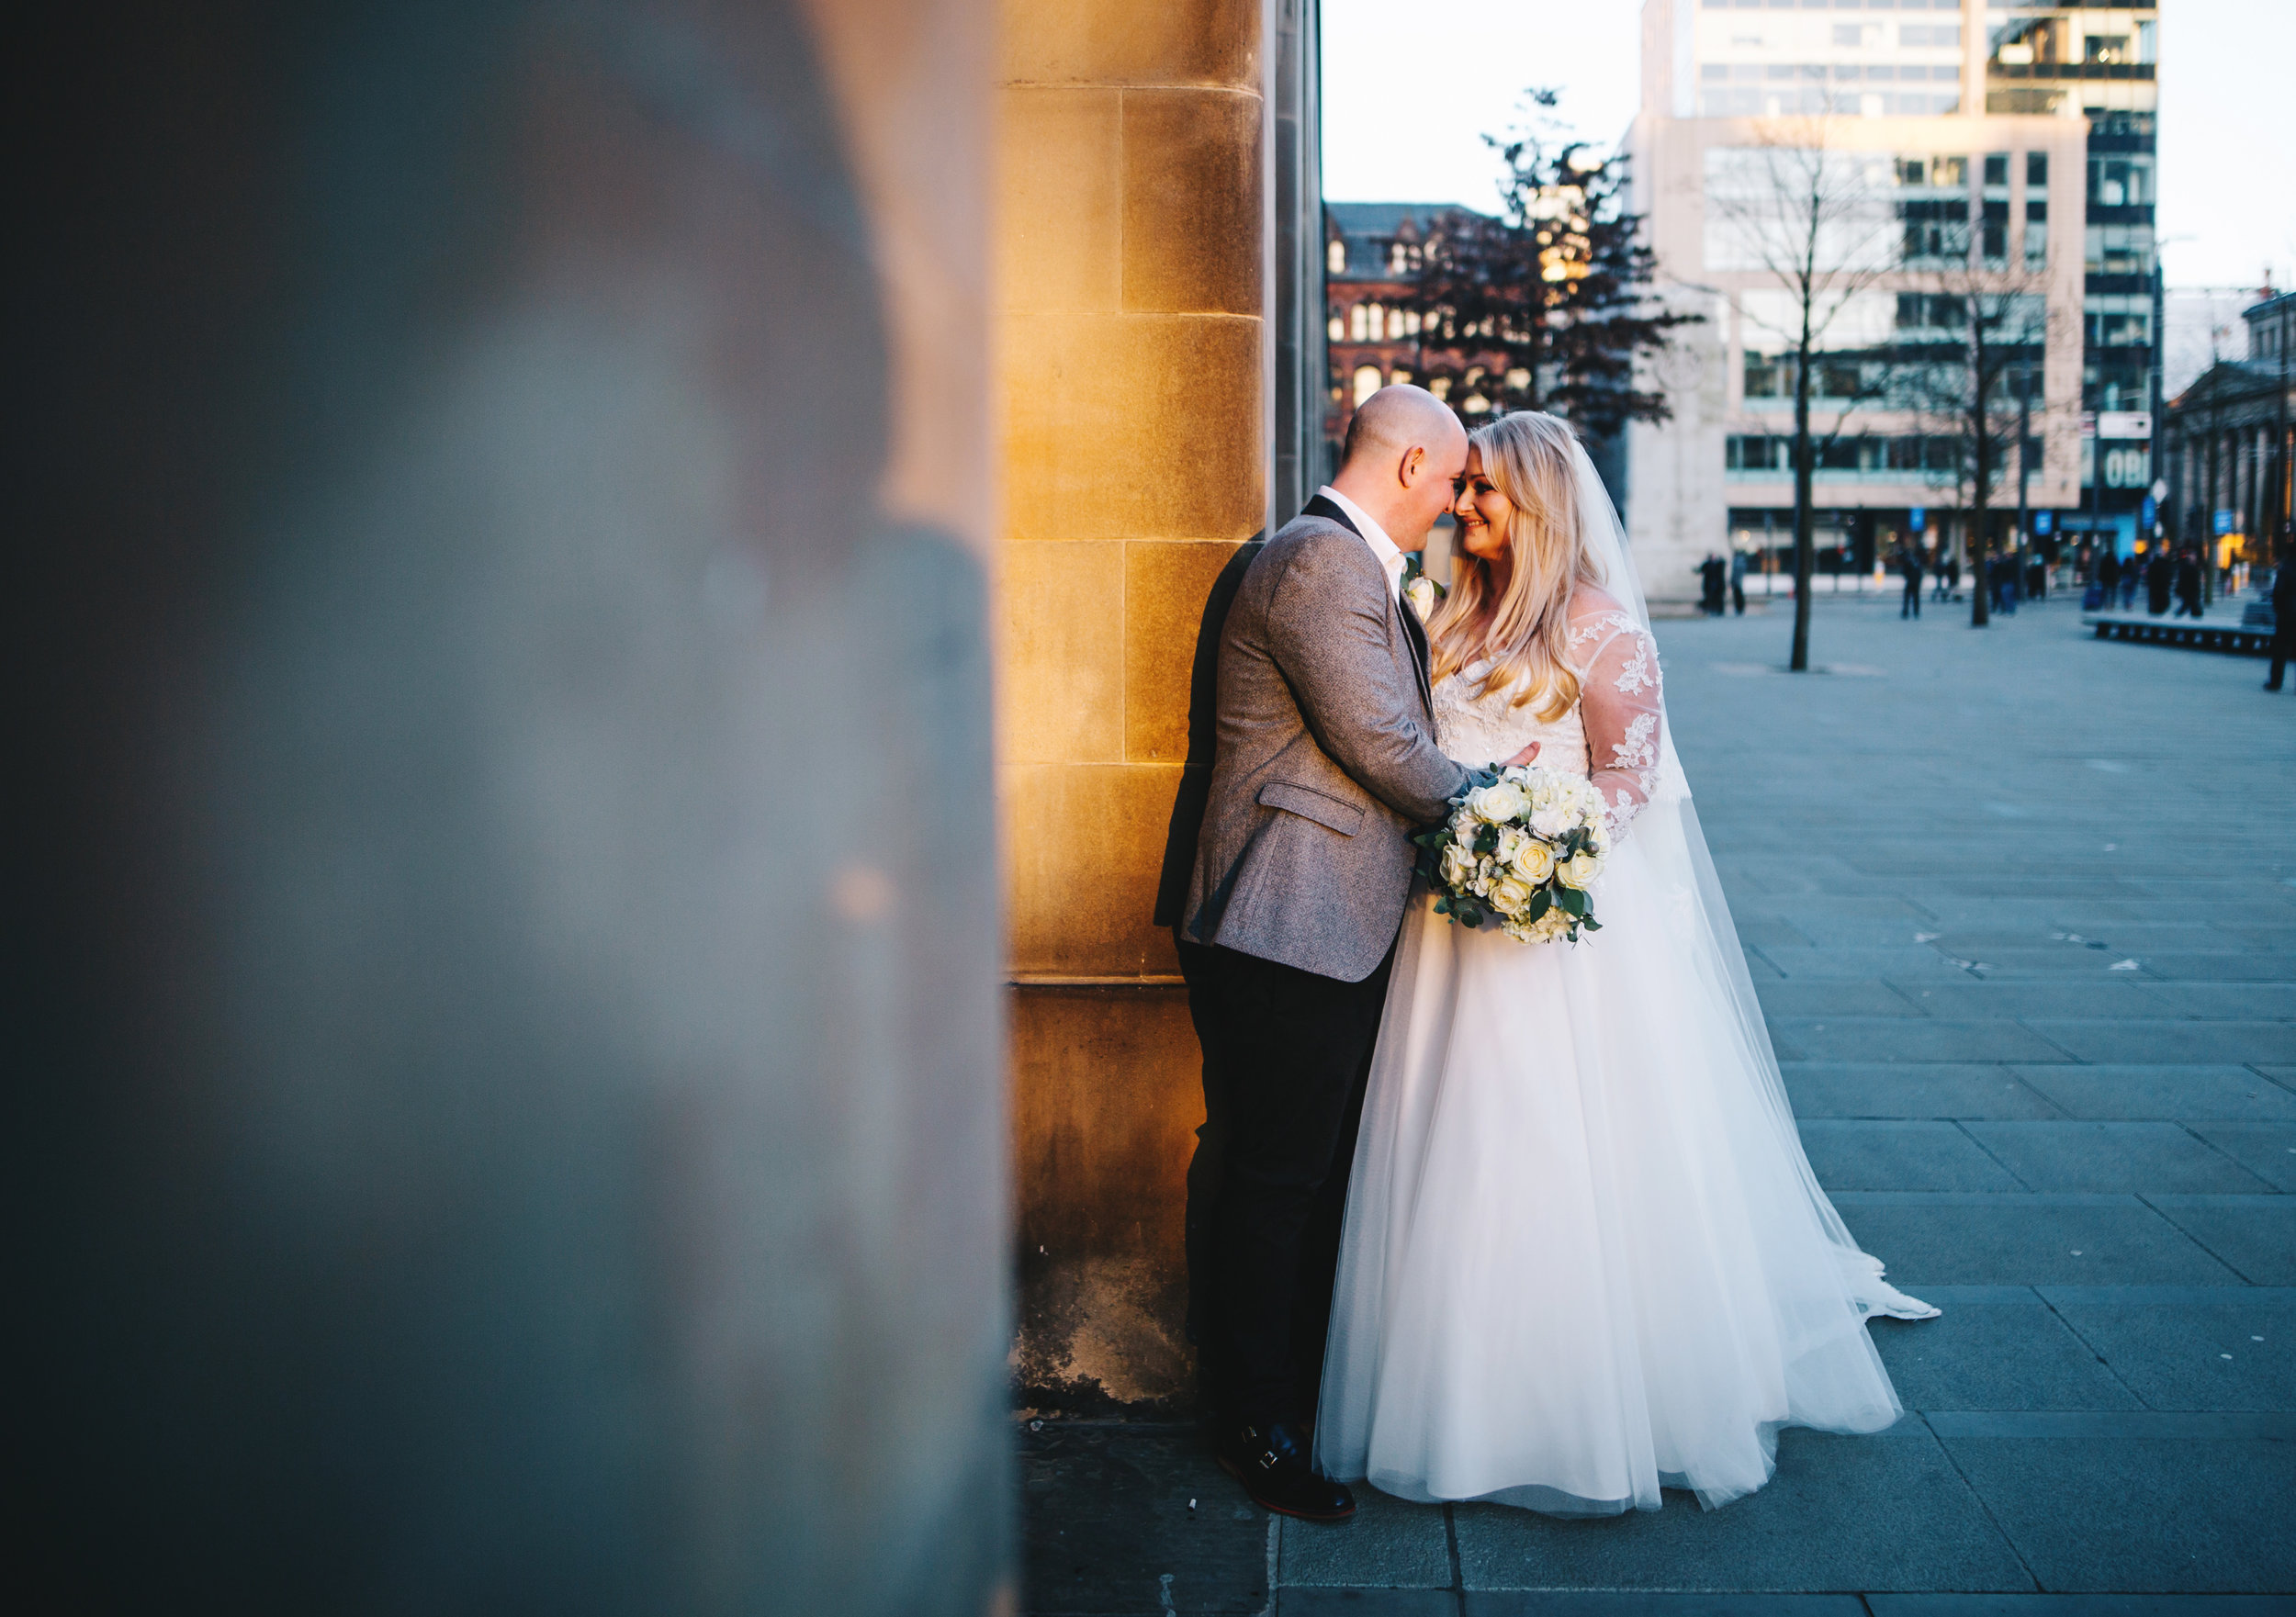 winter wedding portraits at Manchester town hall